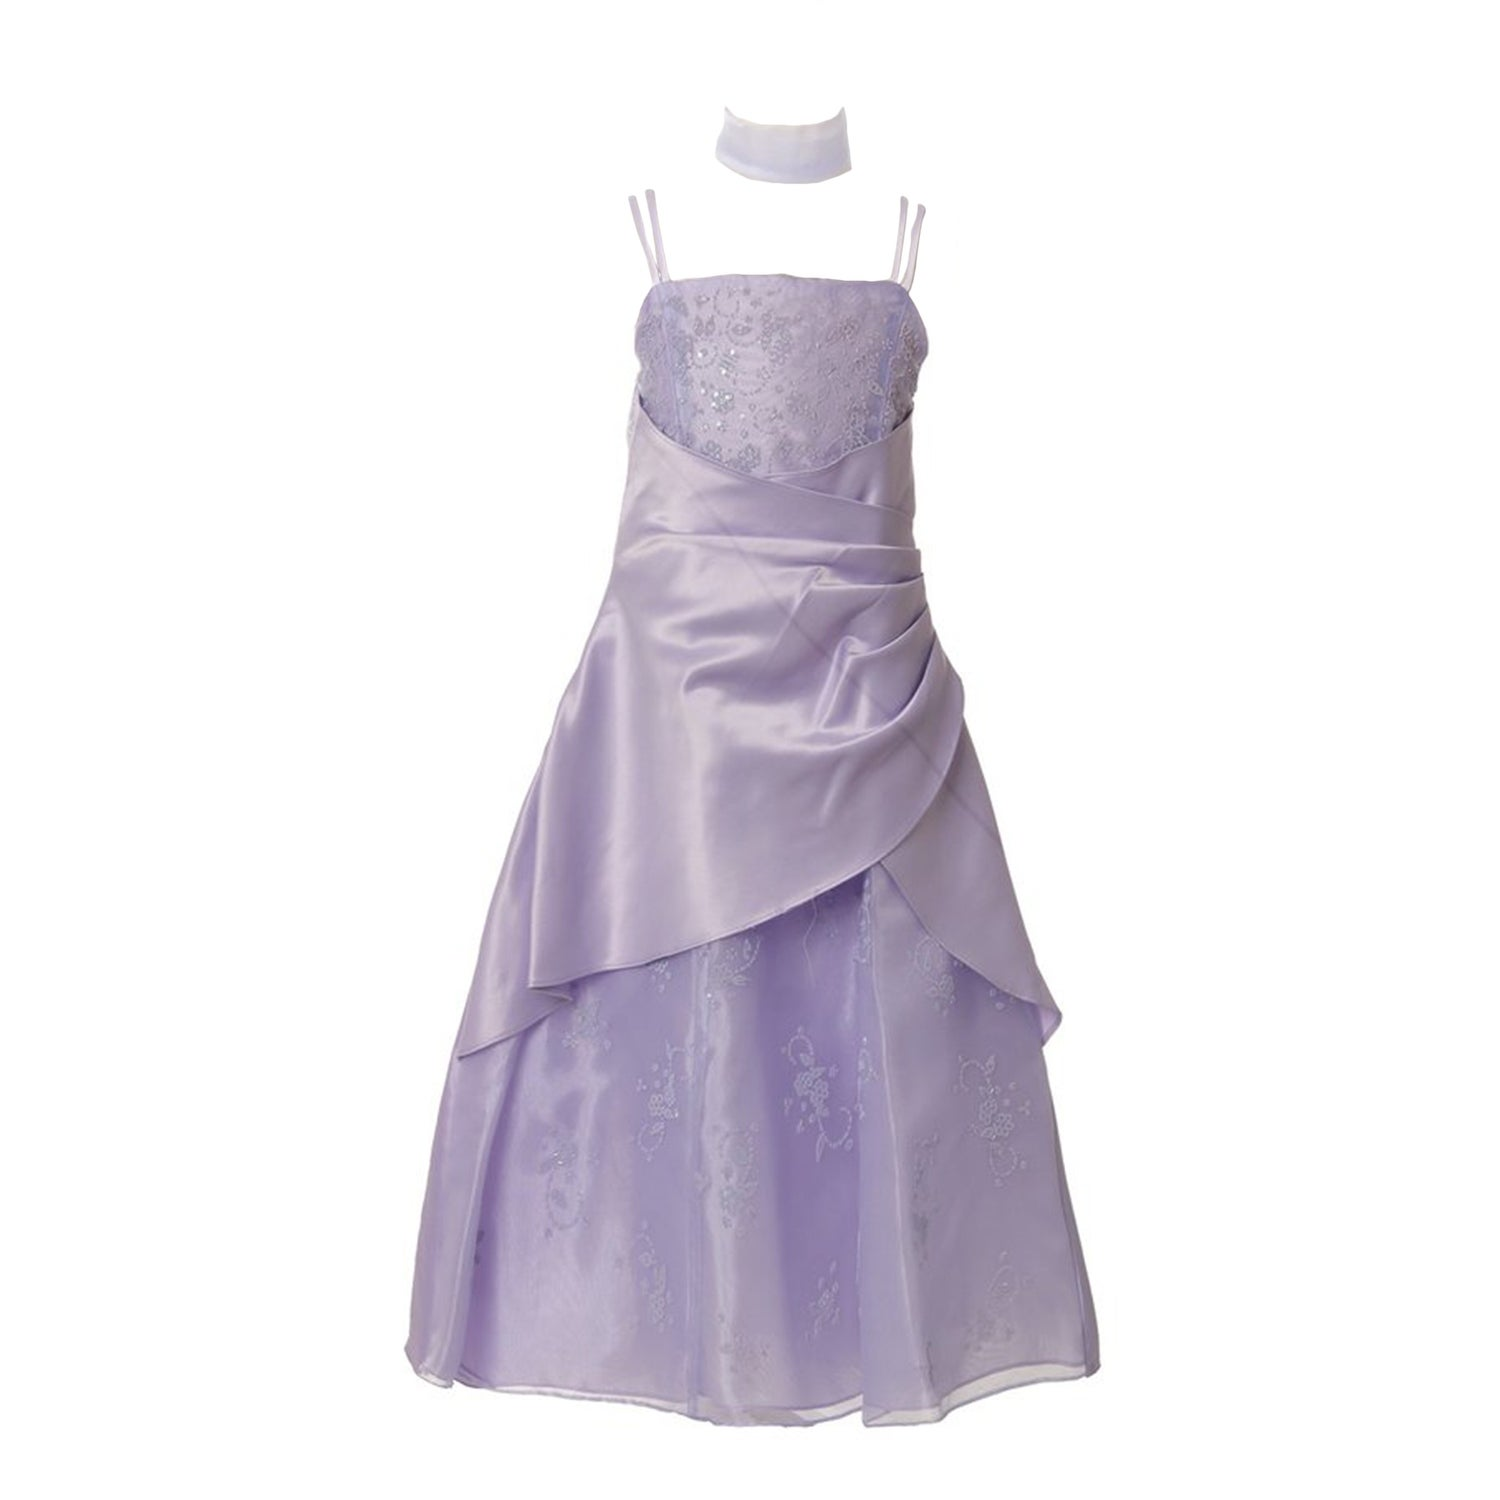 Shop Huncho Big Girls Lavender Organza Lace Overlay Junior Bridesmaid Dress Overstock 30391638,Wedding Dresses Abilene Tx